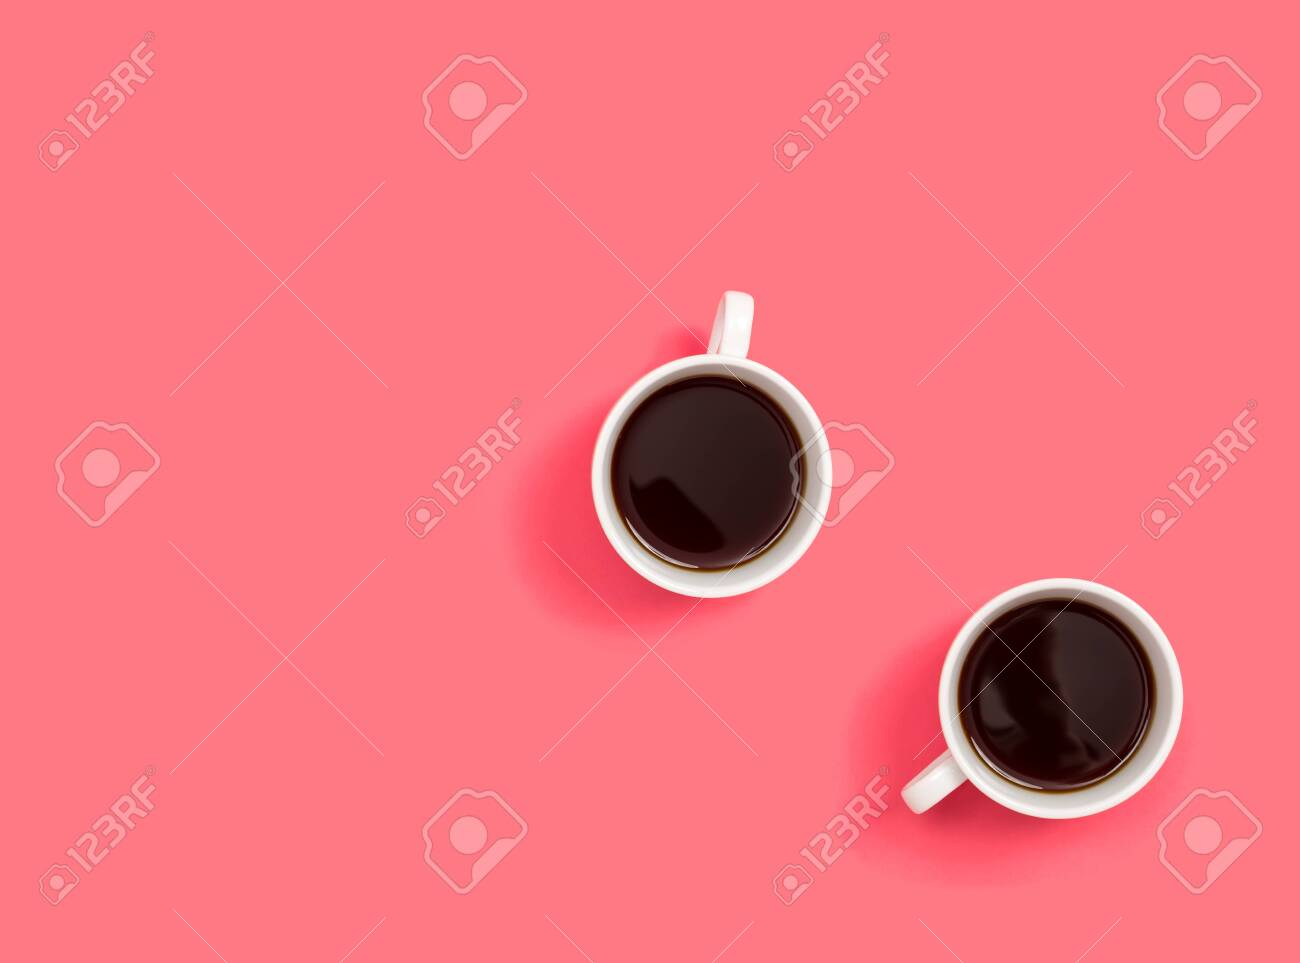 Two coffee cup overhead view flat lay - 121750045